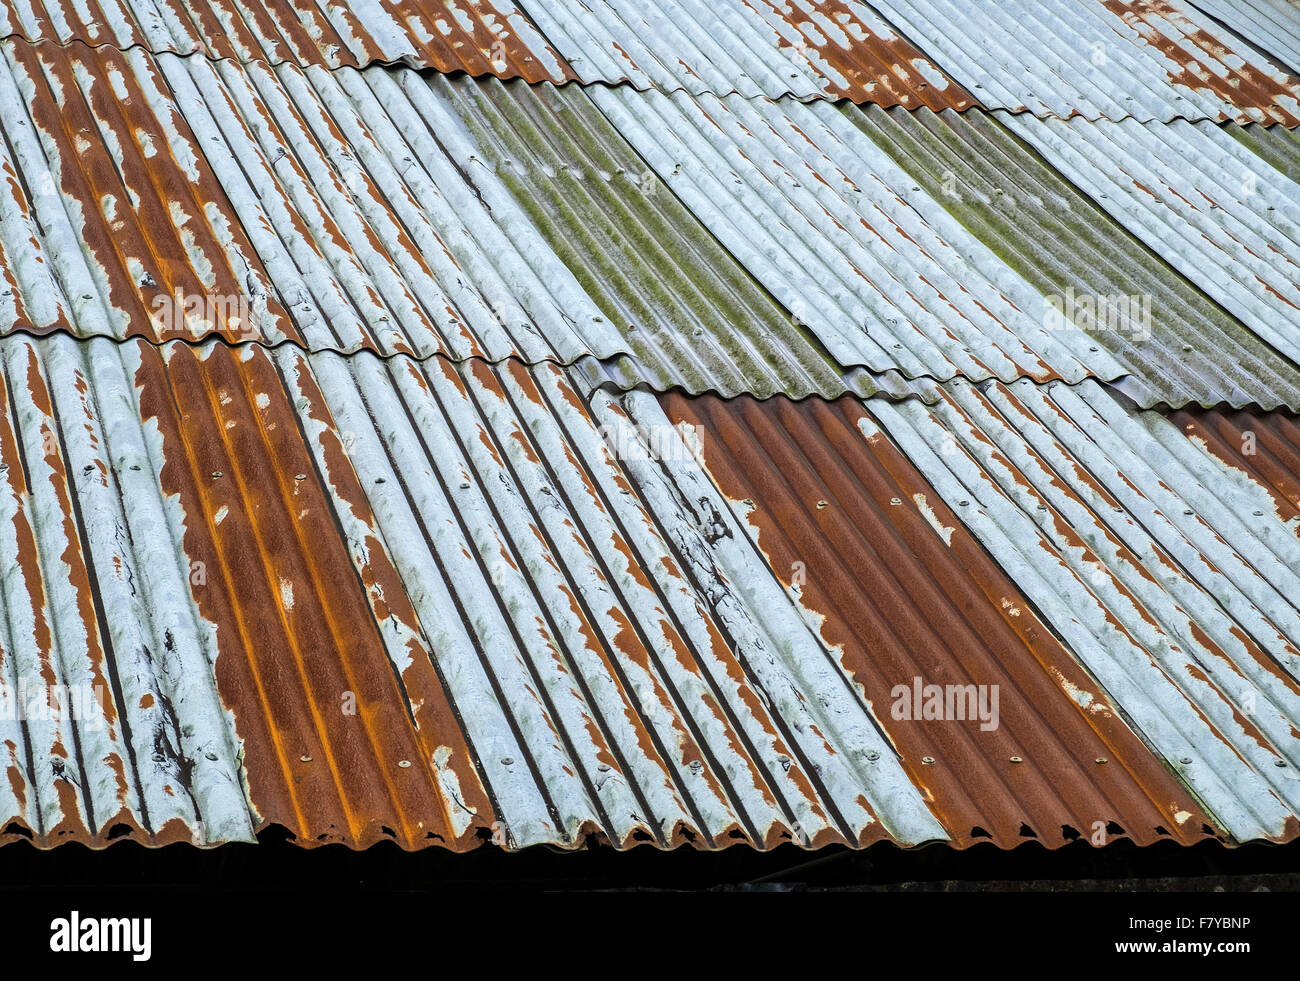 a roof made from corrugated iron sheeting - Stock Image